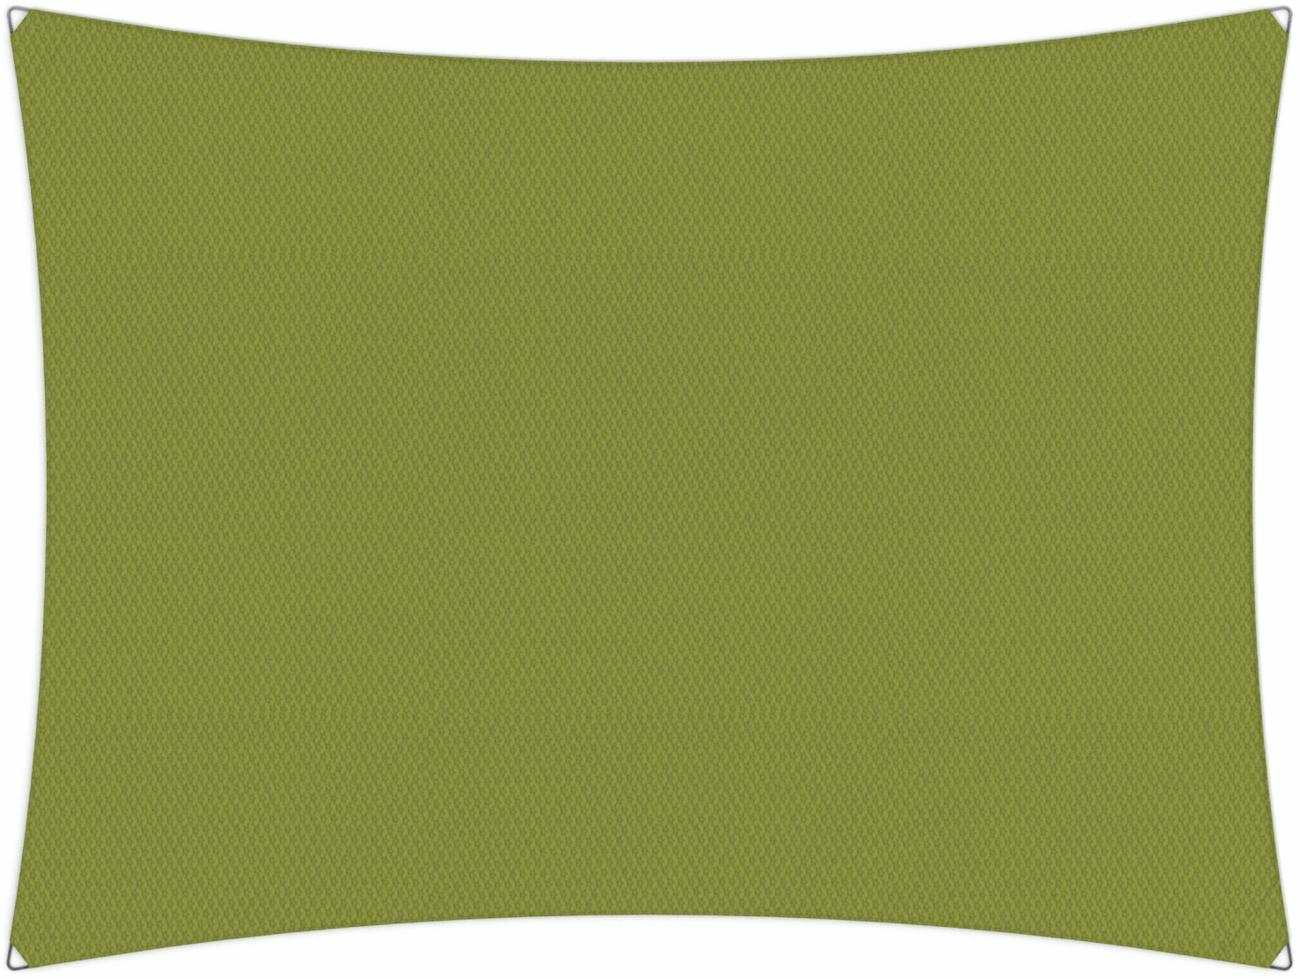 Ingenua shade sail Rectangle 5 x 3 m, for outdoor use. Colour of the fabric shade sail Lichen.